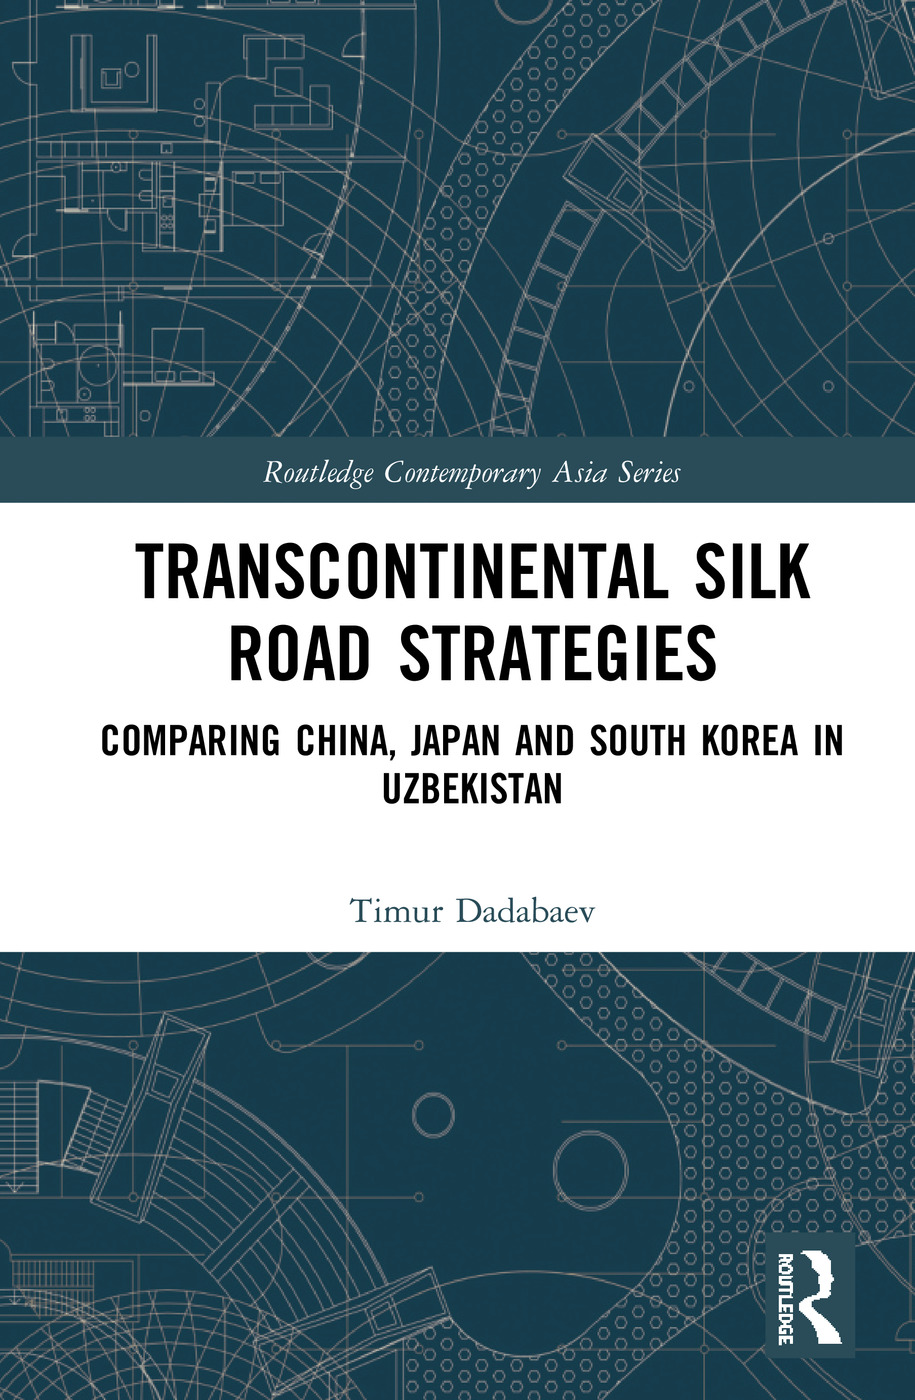 Transcontinental Silk Road Strategies: Comparing China, Japan and South Korea in Uzbekistan book cover